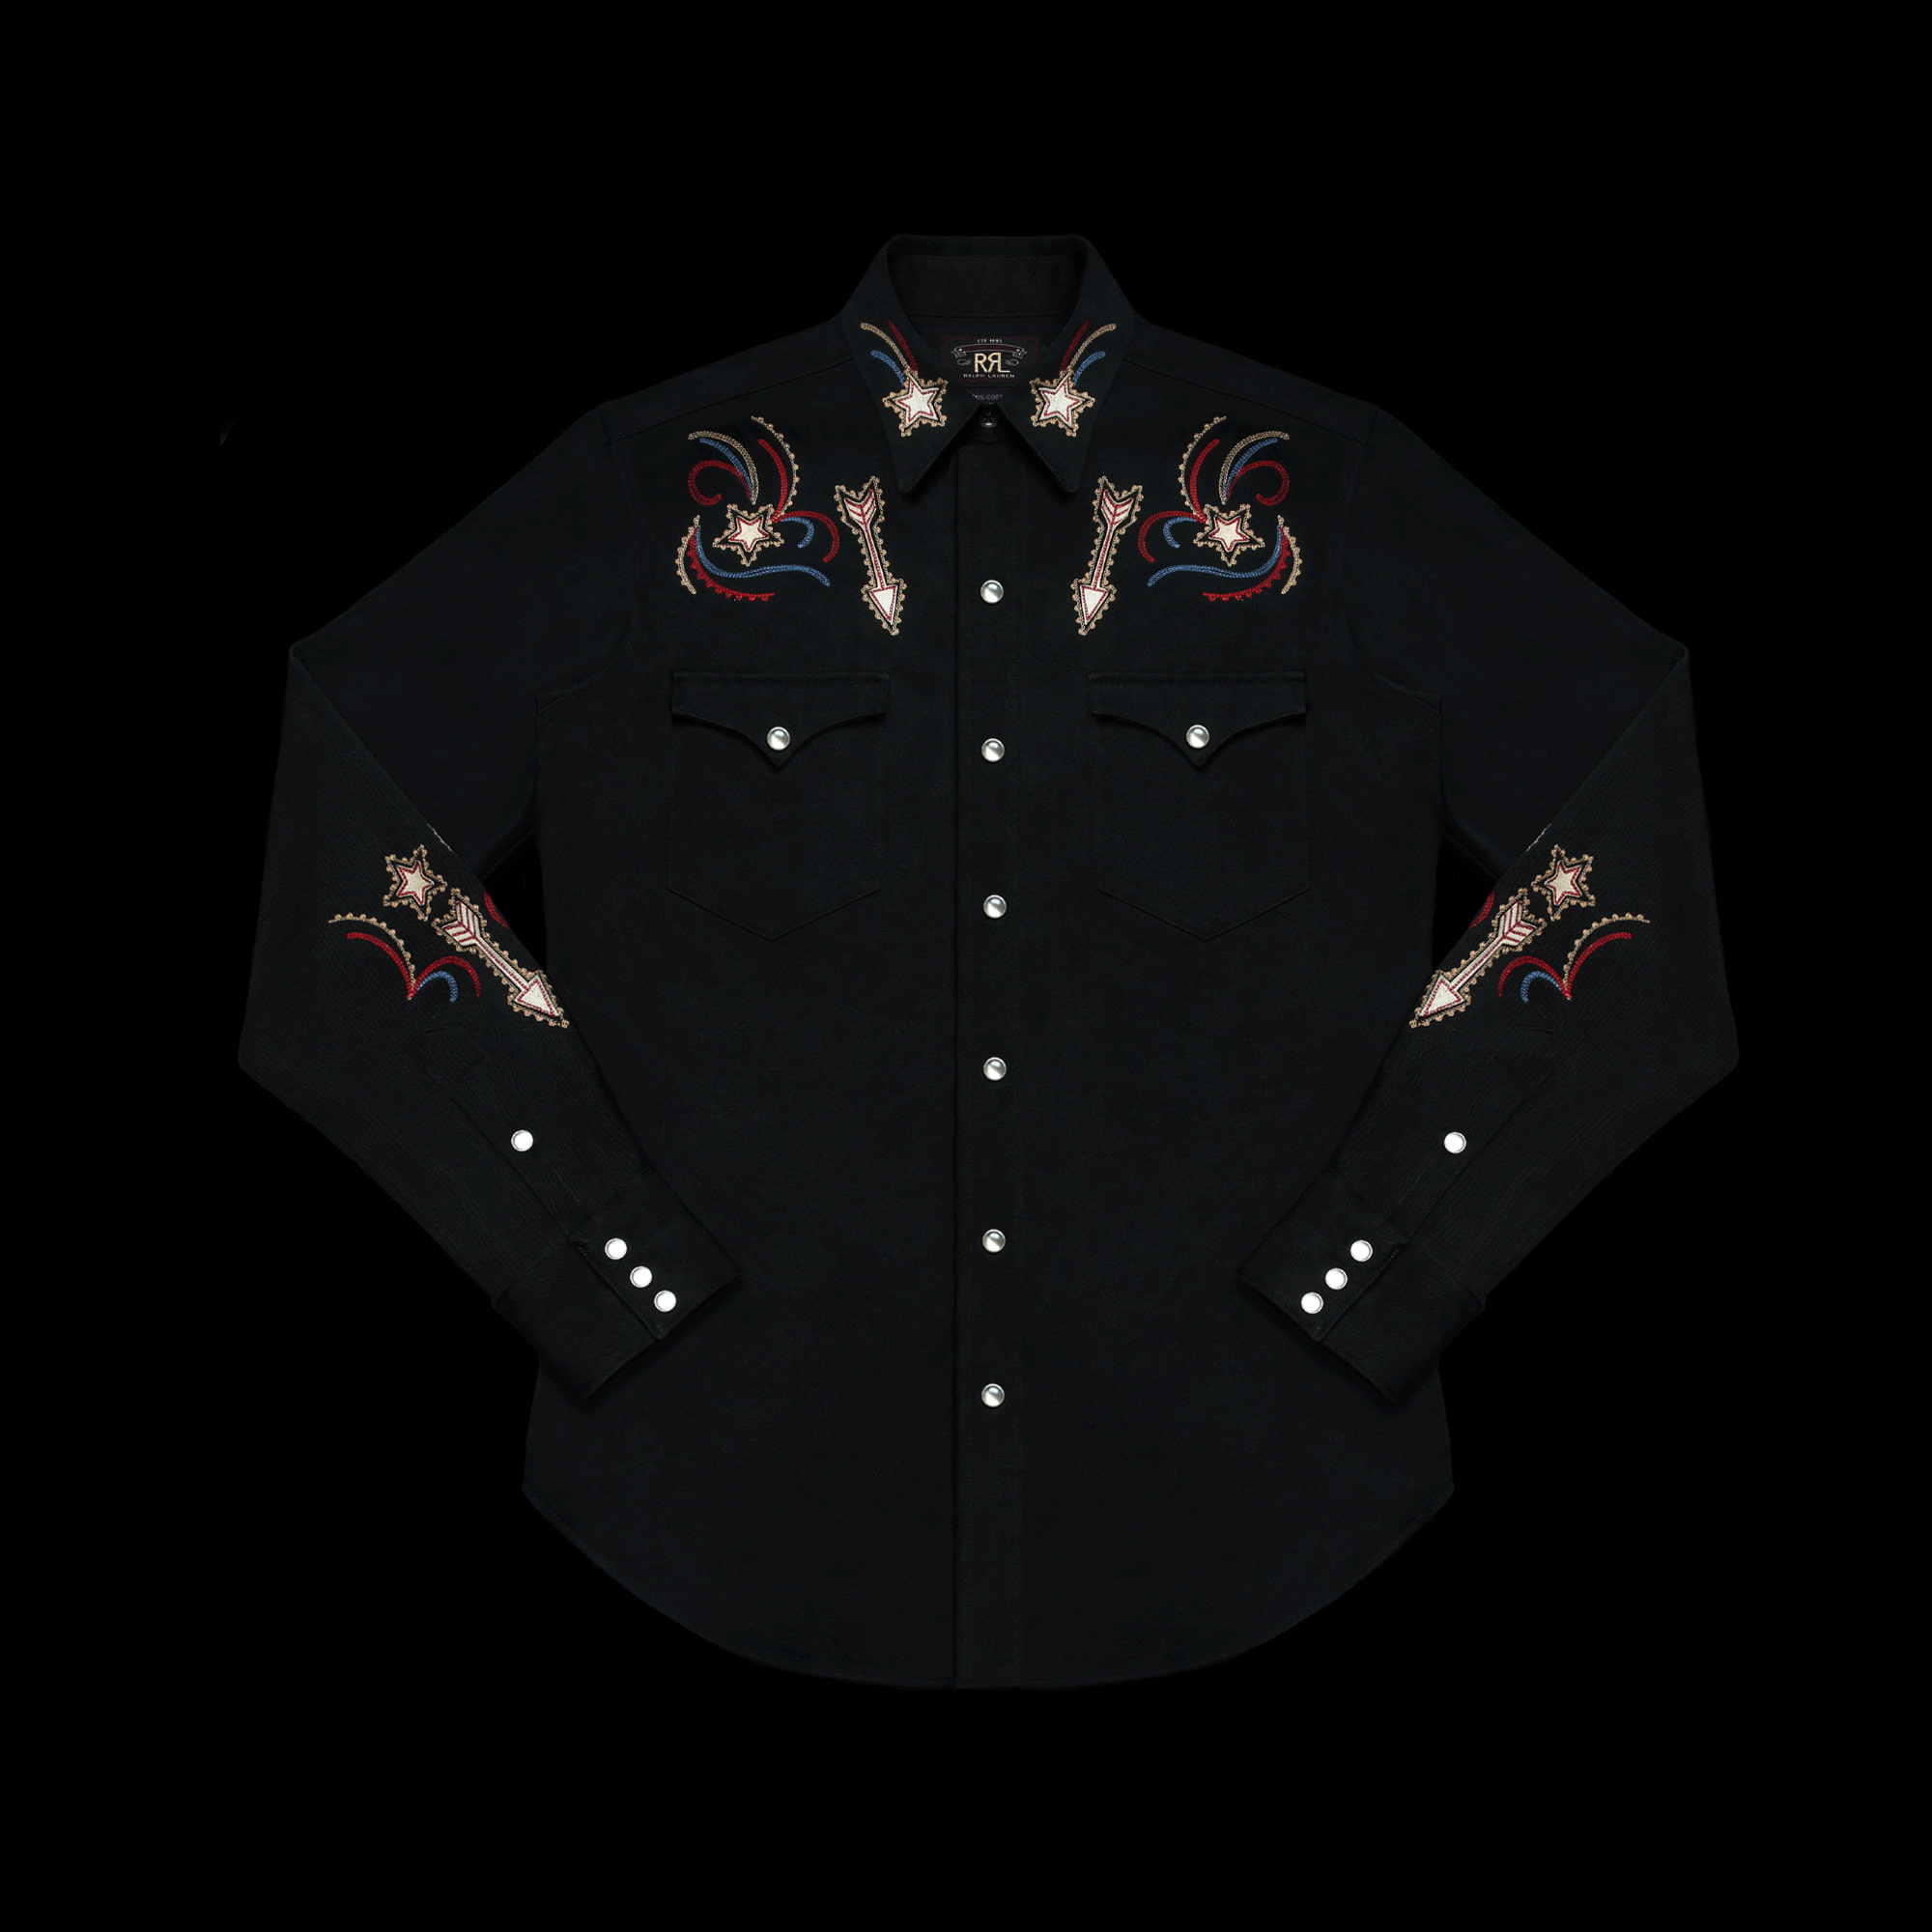 RRLEXCLUSIVE OF DECORATIONWESTERN SHIRT